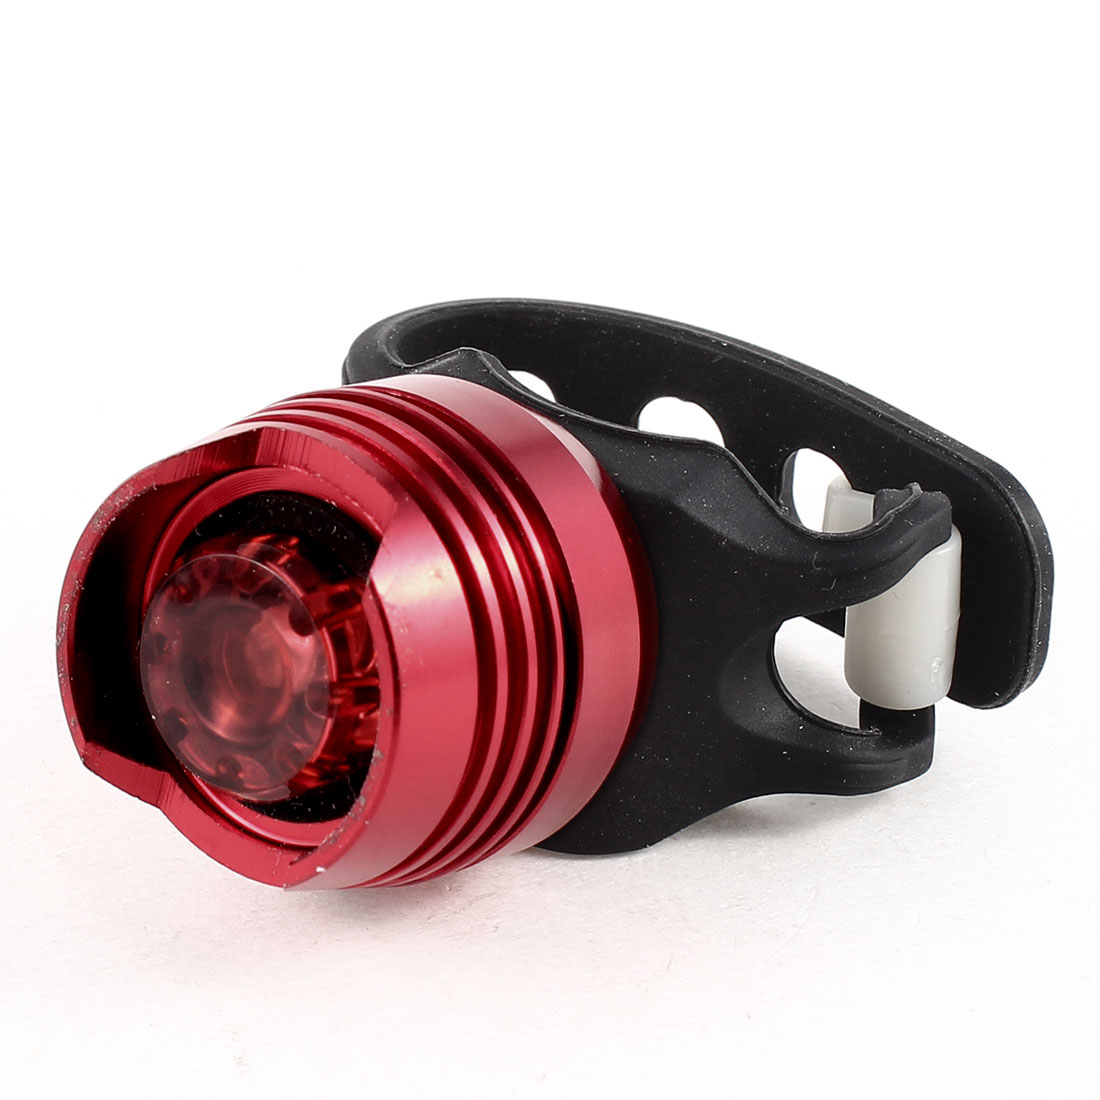 Aluminum Shell Bicycle Emergency Safety Warning Red LED Rear Lamp Tail Light